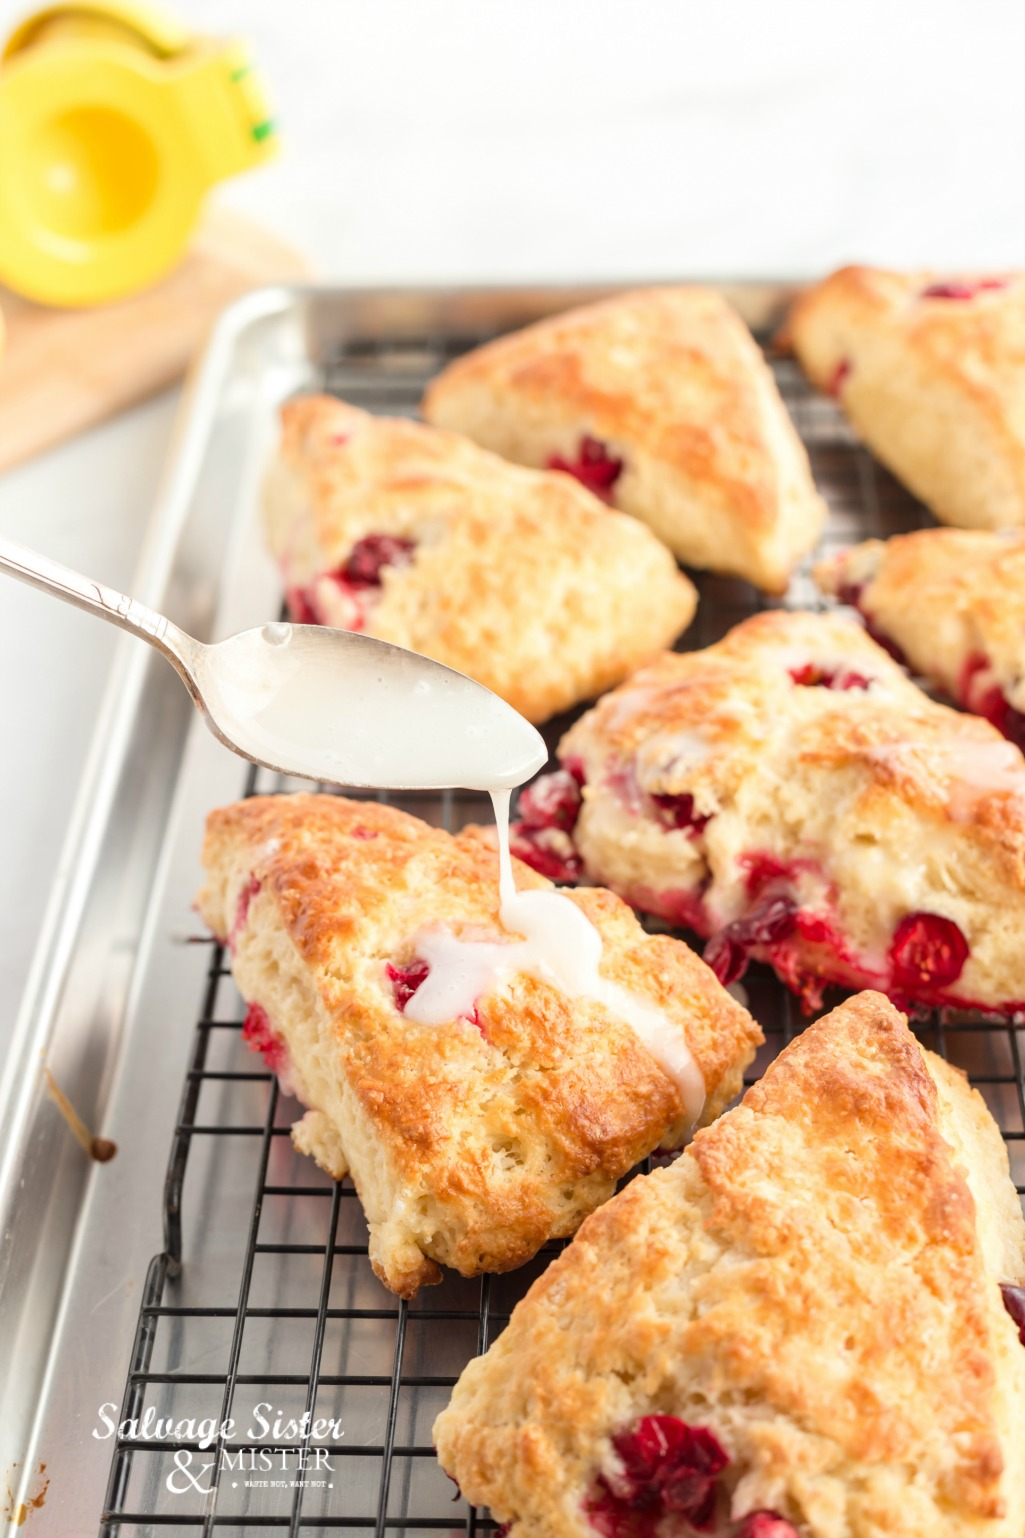 recipe forcranberry lemon scones on salvagesisterandmister.com